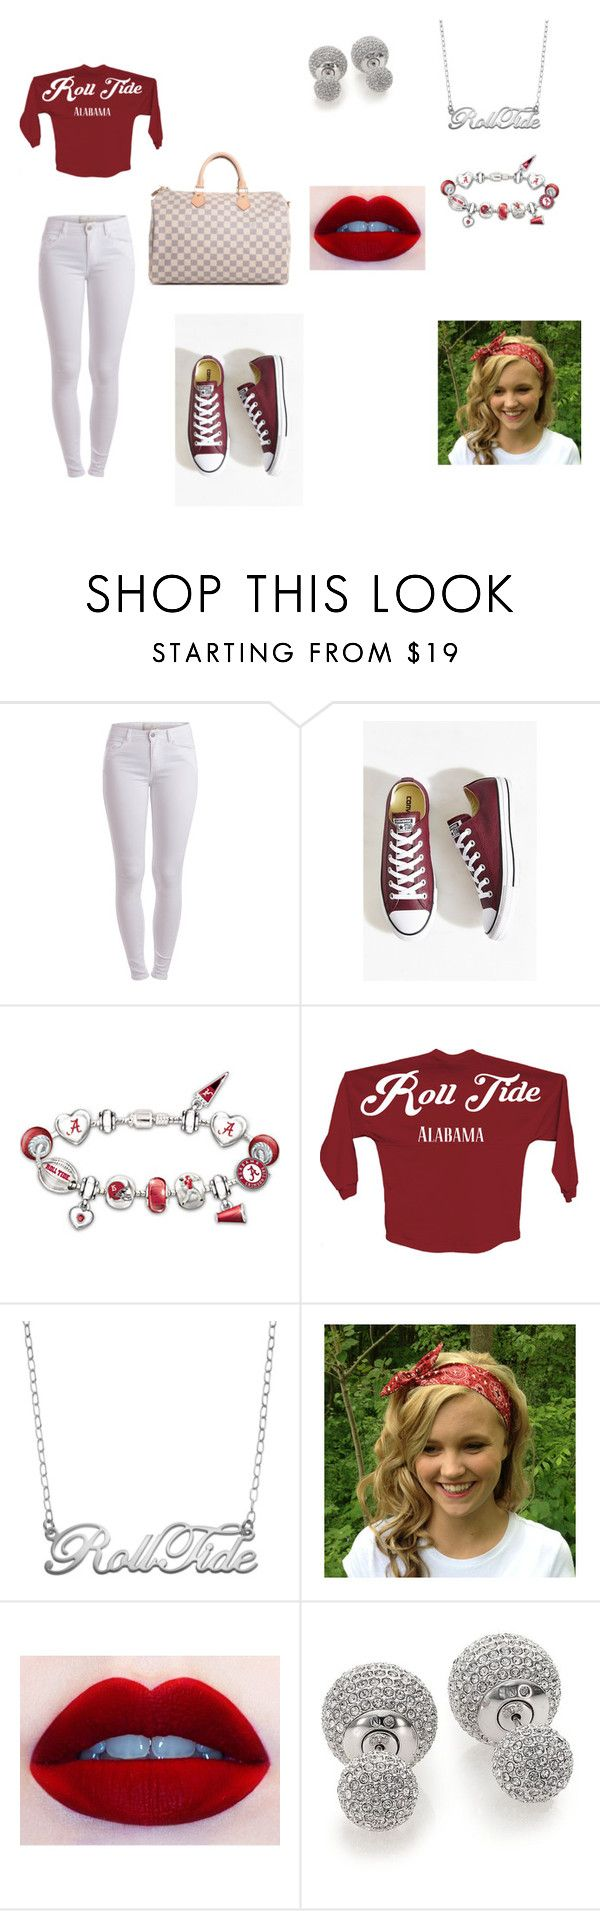 """""""RollTide_Alabama"""" by glitzy-metallic-acc ❤ liked on Polyvore featuring Pieces, Converse, The Bradford Exchange, Fiora, Adriana Orsini and Louis Vuitton"""